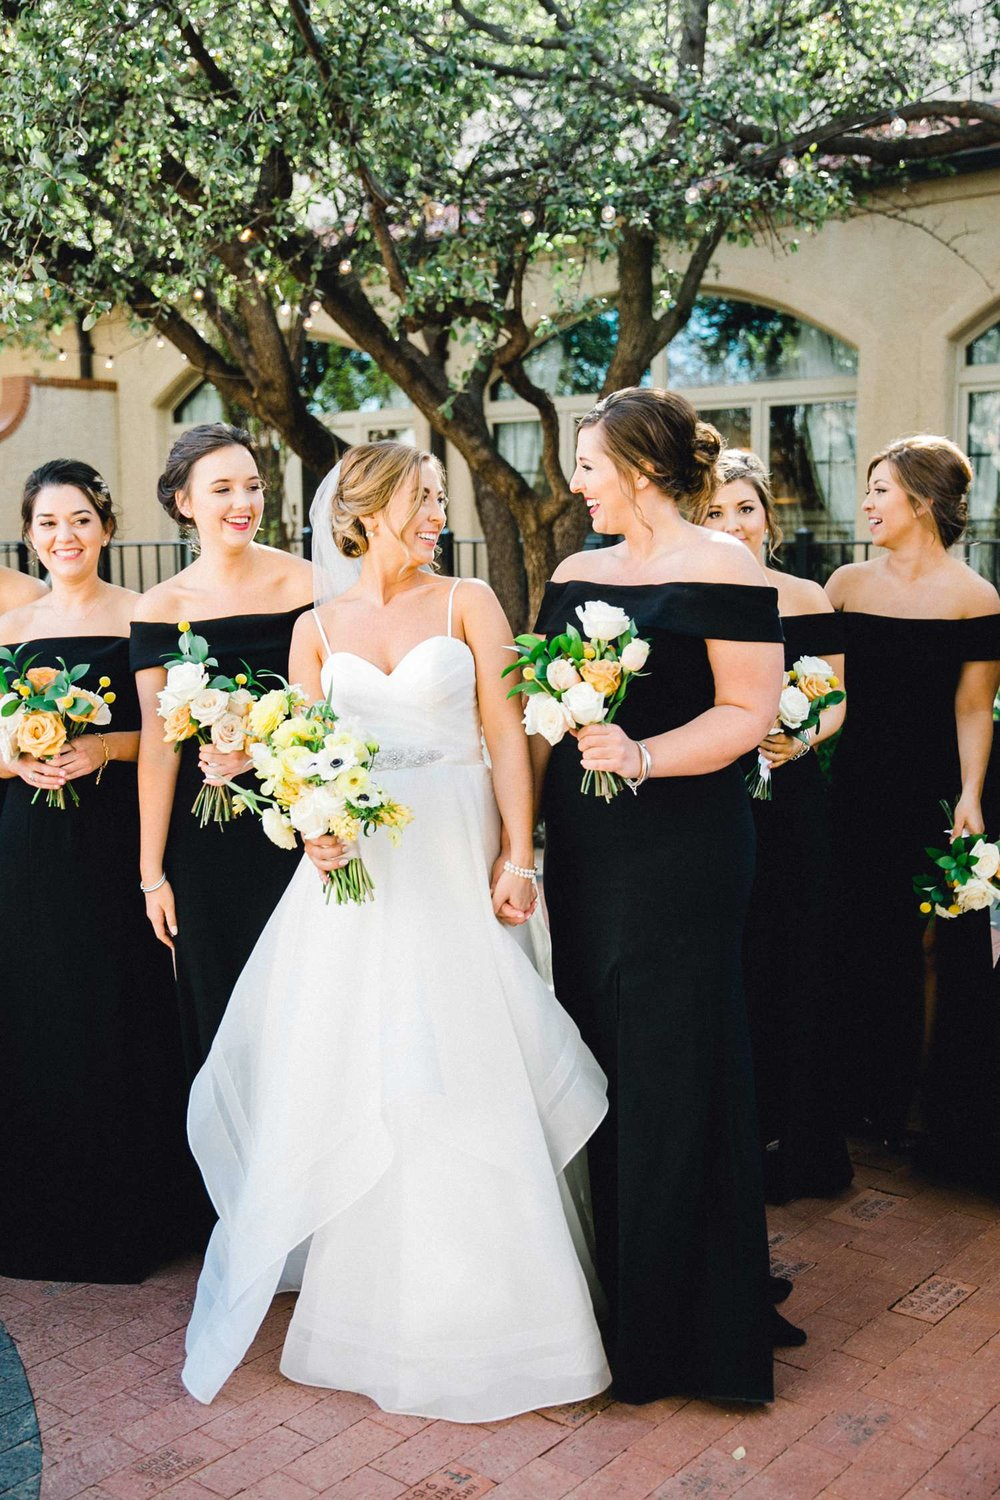 MARLEE+LLOYD+MORGAN+ALLEEJ+TEXAS+TECH+MERKET+ALUMNI+WEDDINGS+LUBBOCK+WEST+TABLE+CLASSIC+SPAIN_0110.jpg